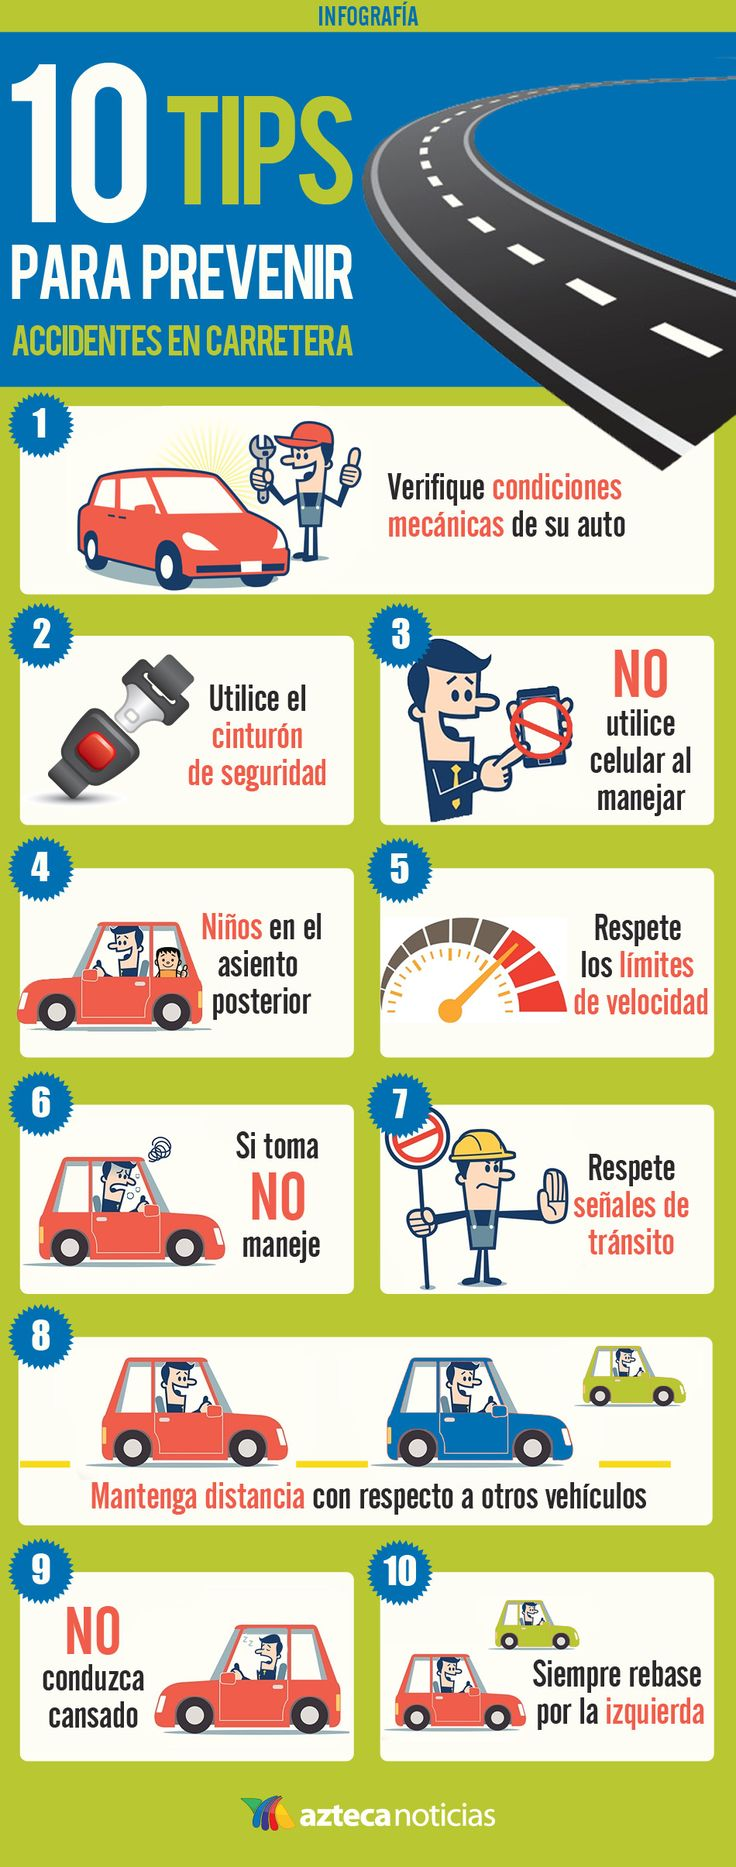 10 tips para prevenir accidentes en carrtera